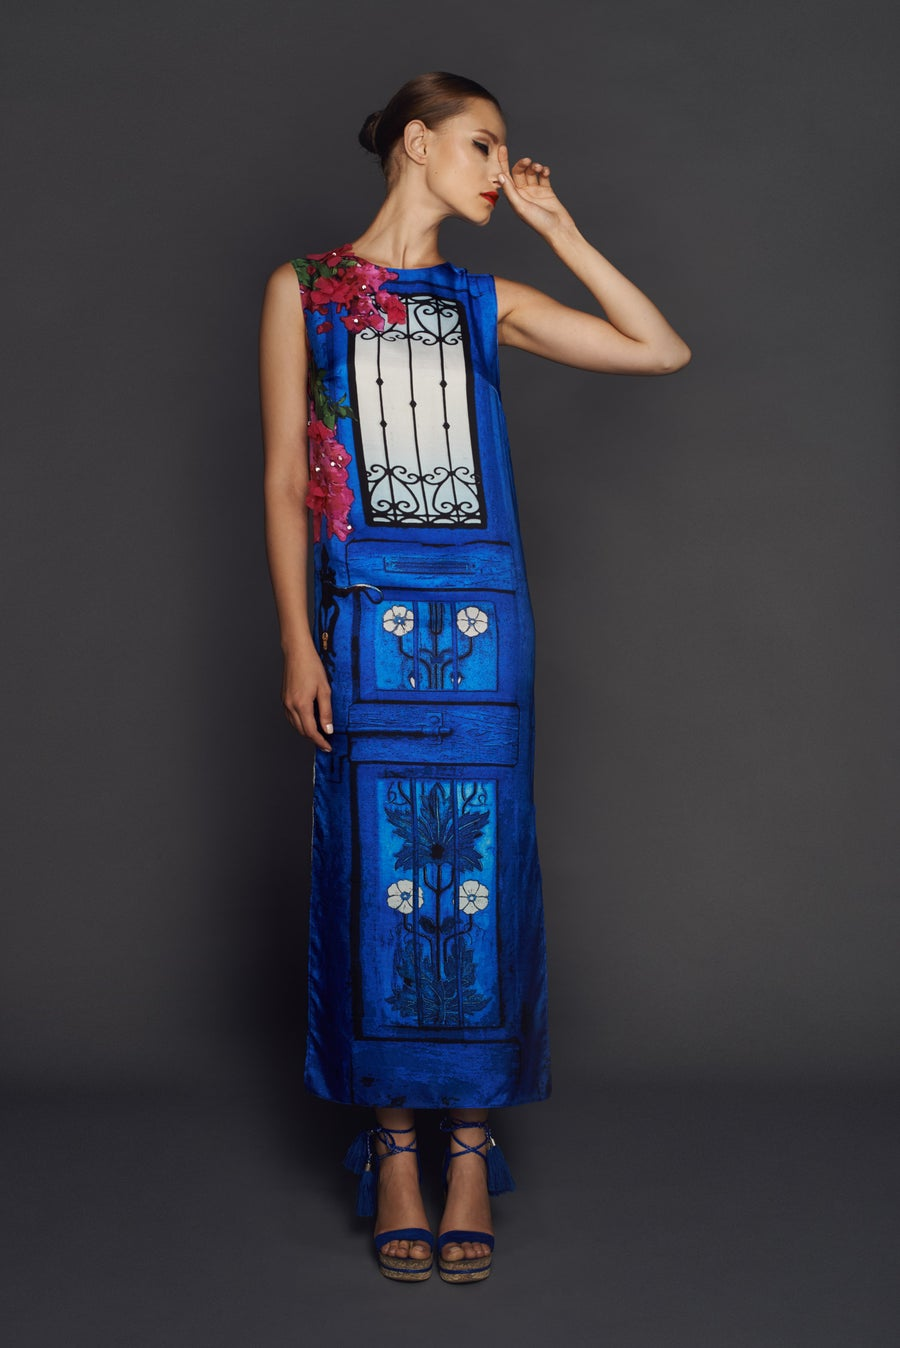 Image of Door dress from Andalusia collection